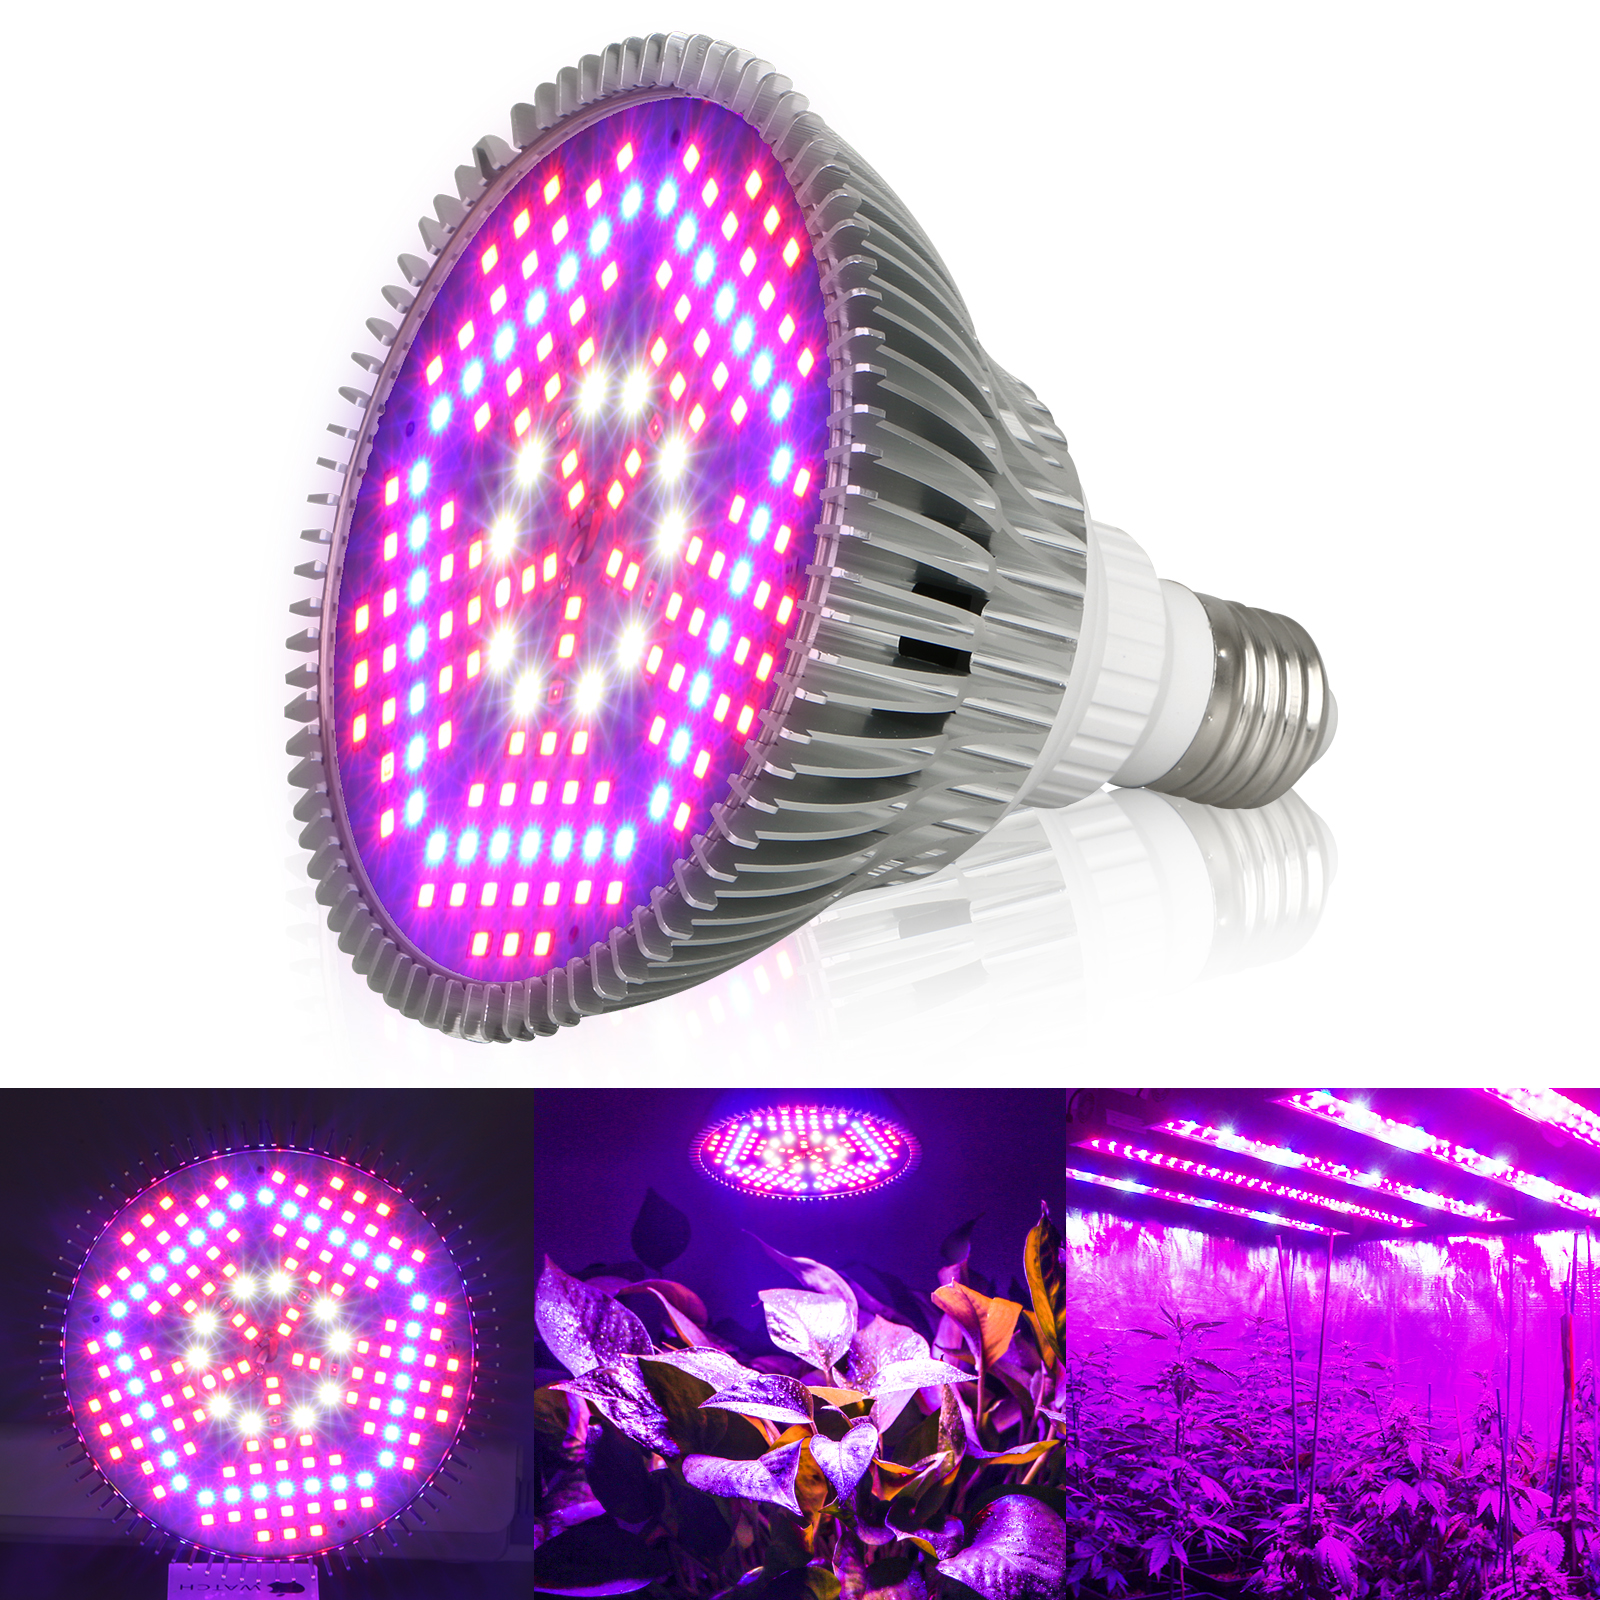 E27 Led 100w 100w E27 Led Grow Light Bulb Plant Lights Full Spectrum For Indoor Plants Hydroponics Flowers Tobacco Garden Greenhouse And Organic Soil